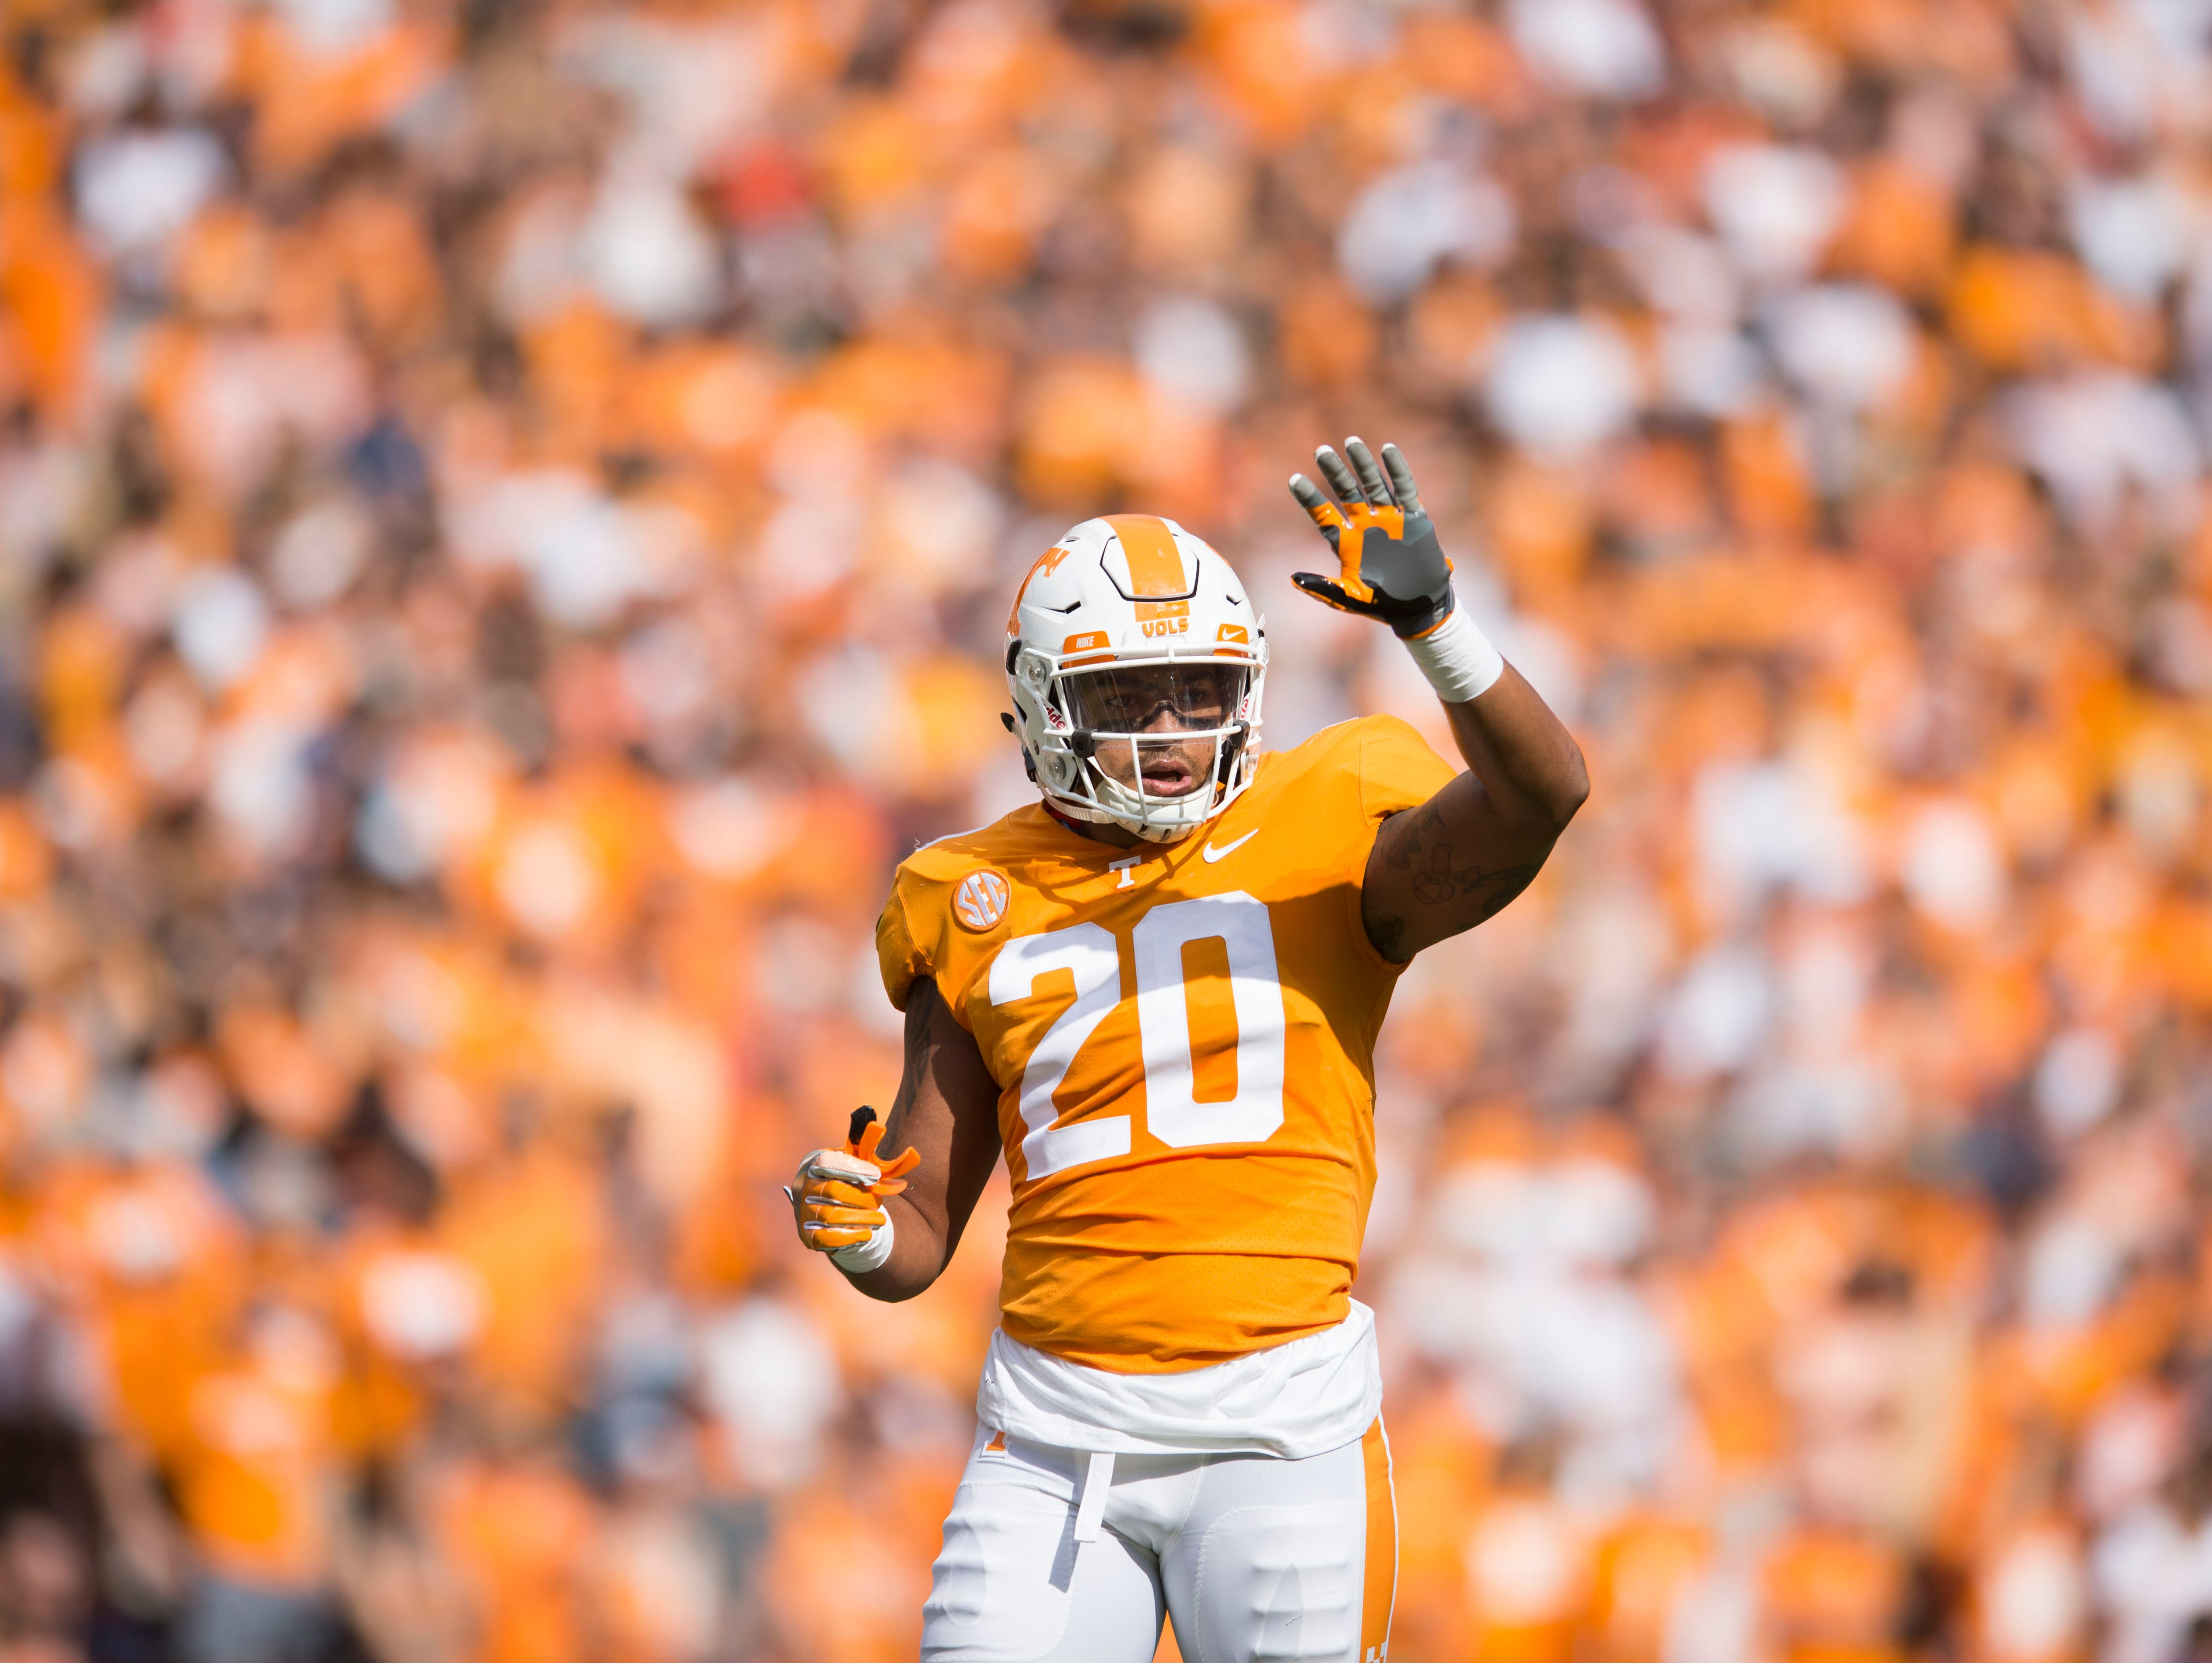 Tennessee linebacker Cortez McDowell (20) raises a hand during the Tennessee Volunteers vs. Indiana State Sycamores game at Neyland Stadium in Knoxville, Tenn. Saturday, Sept. 9, 2017.